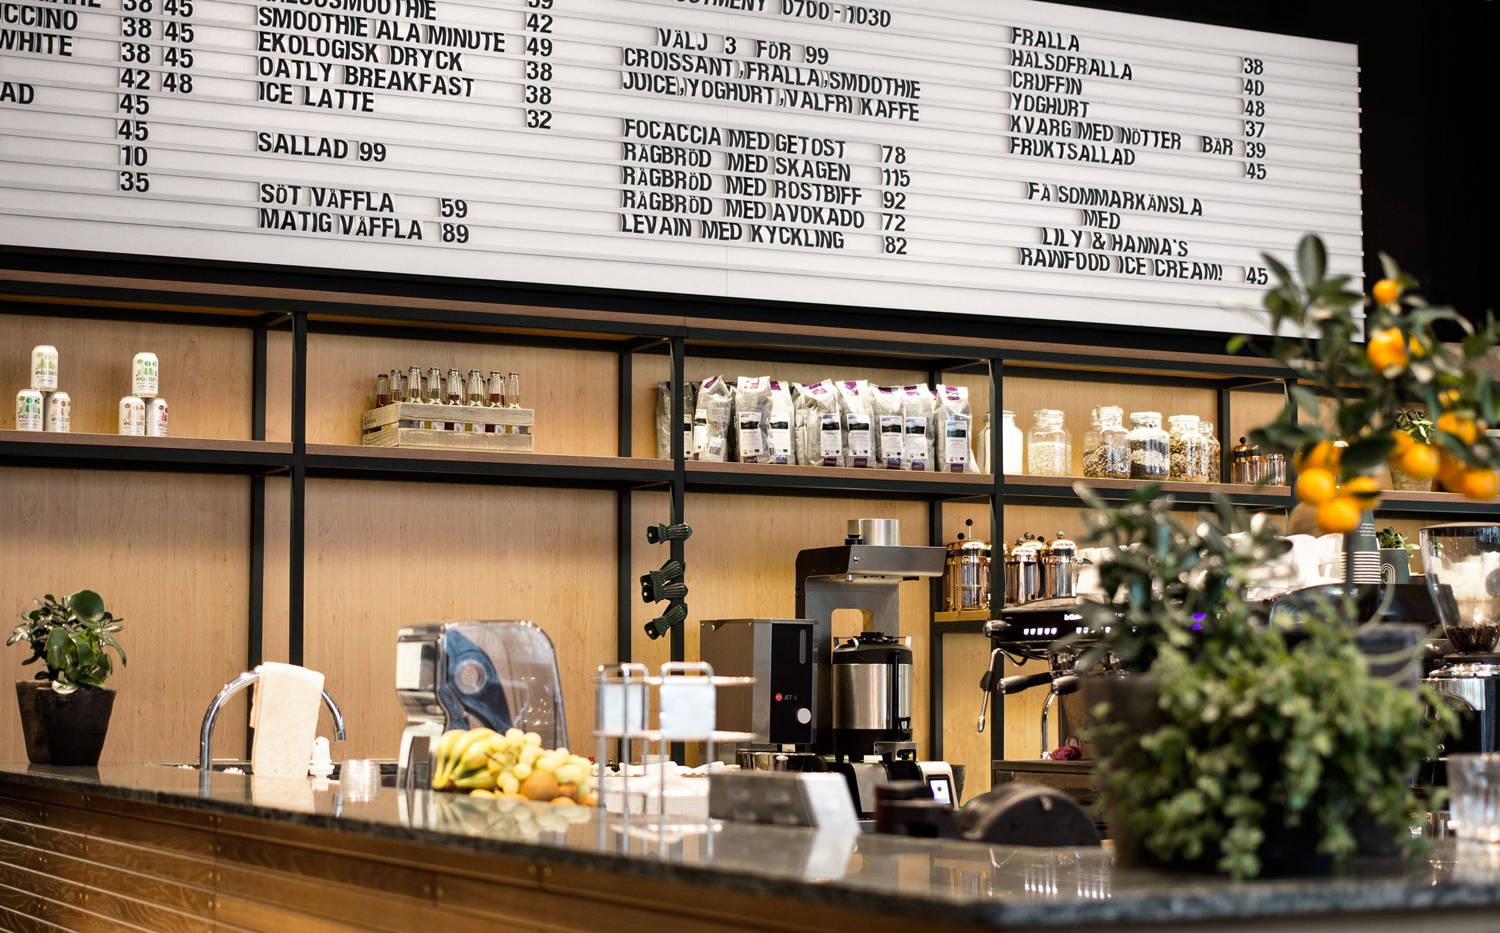 Custom menu board designed by 25ah for Stockholm cafe Caldo Coffee at the Scandic Continental